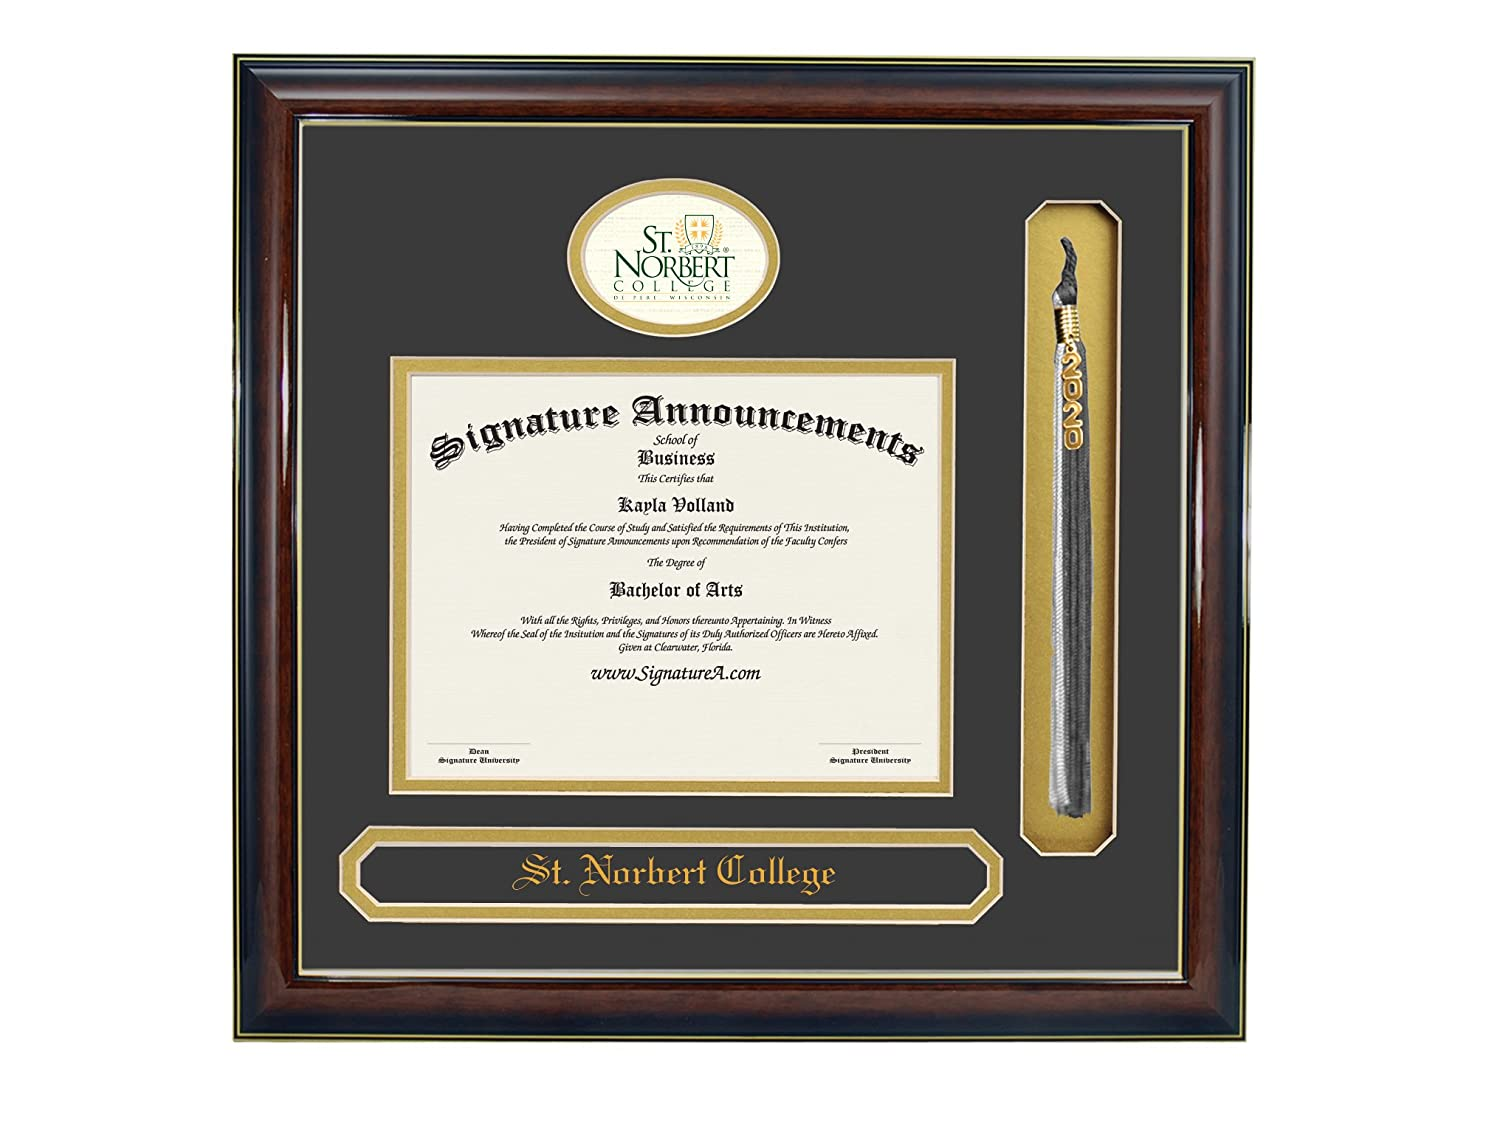 Signature Announcements St-Norbert-College Undergraduate Professional//Doctor Sculpted Foil Seal Name /& Tassel Graduation Diploma Frame 16 x 16 Gold Accent Gloss Mahogany